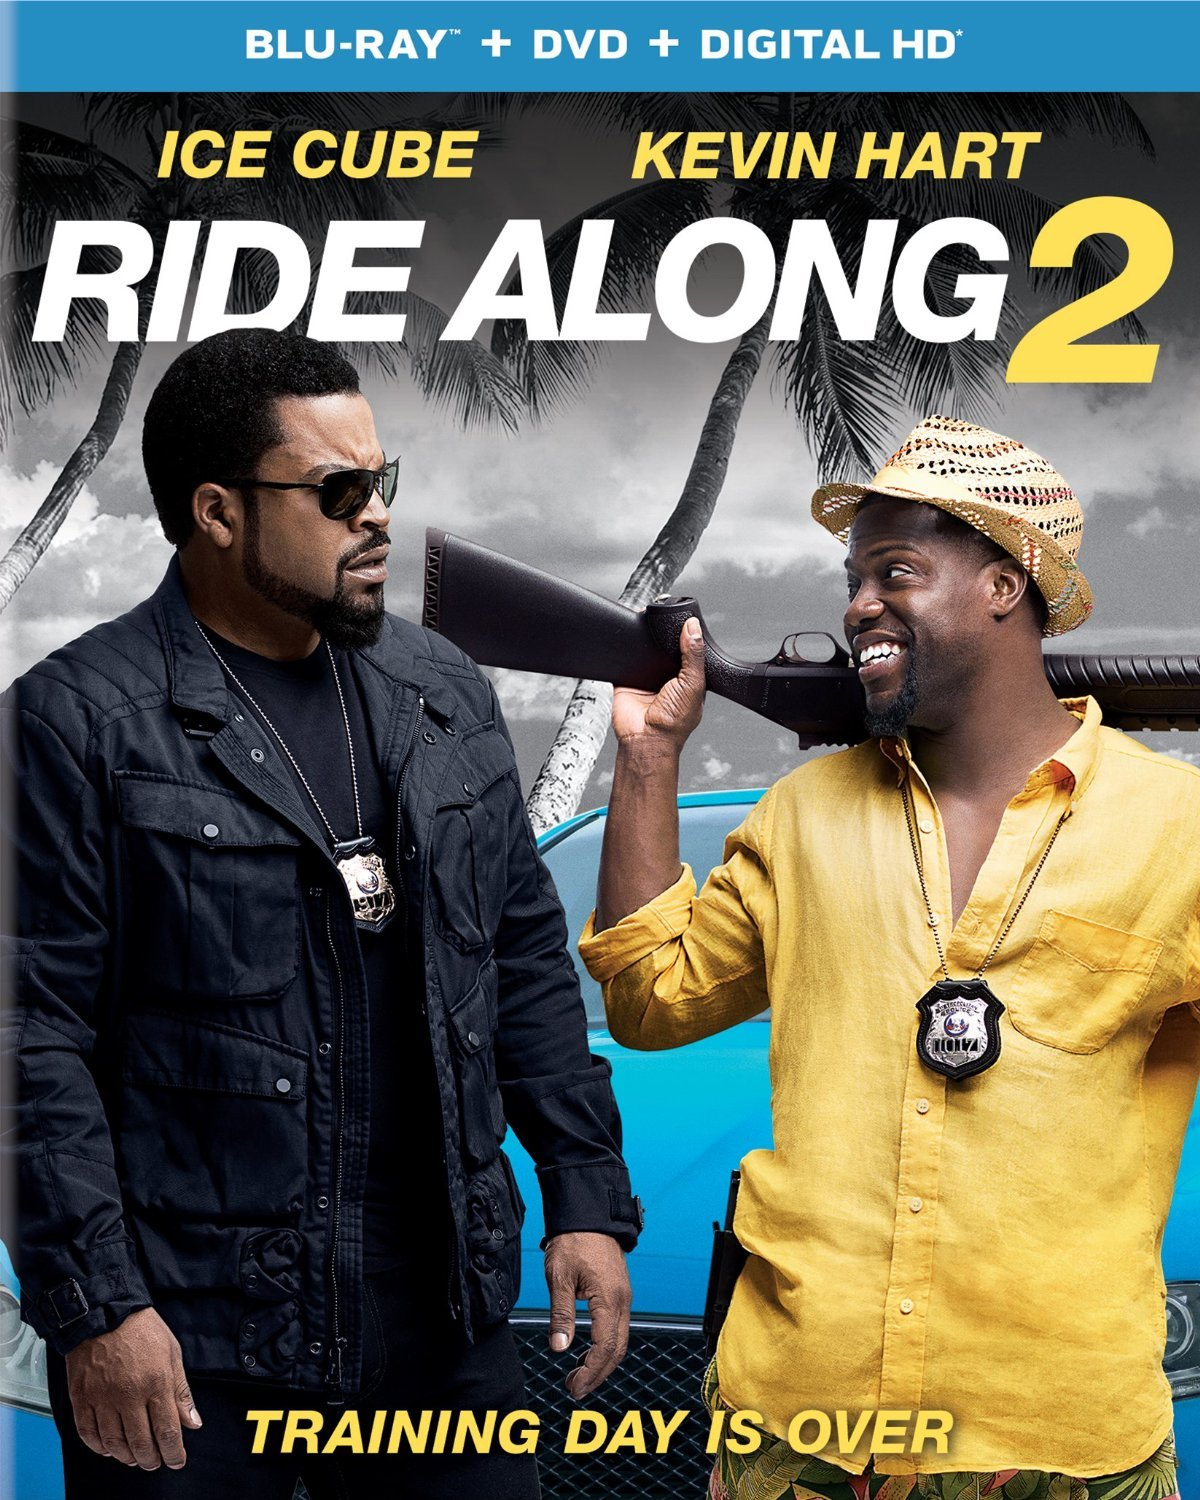 Ride Along 2 [Blu-ray With DVD, Ultraviolet Digital Copy)